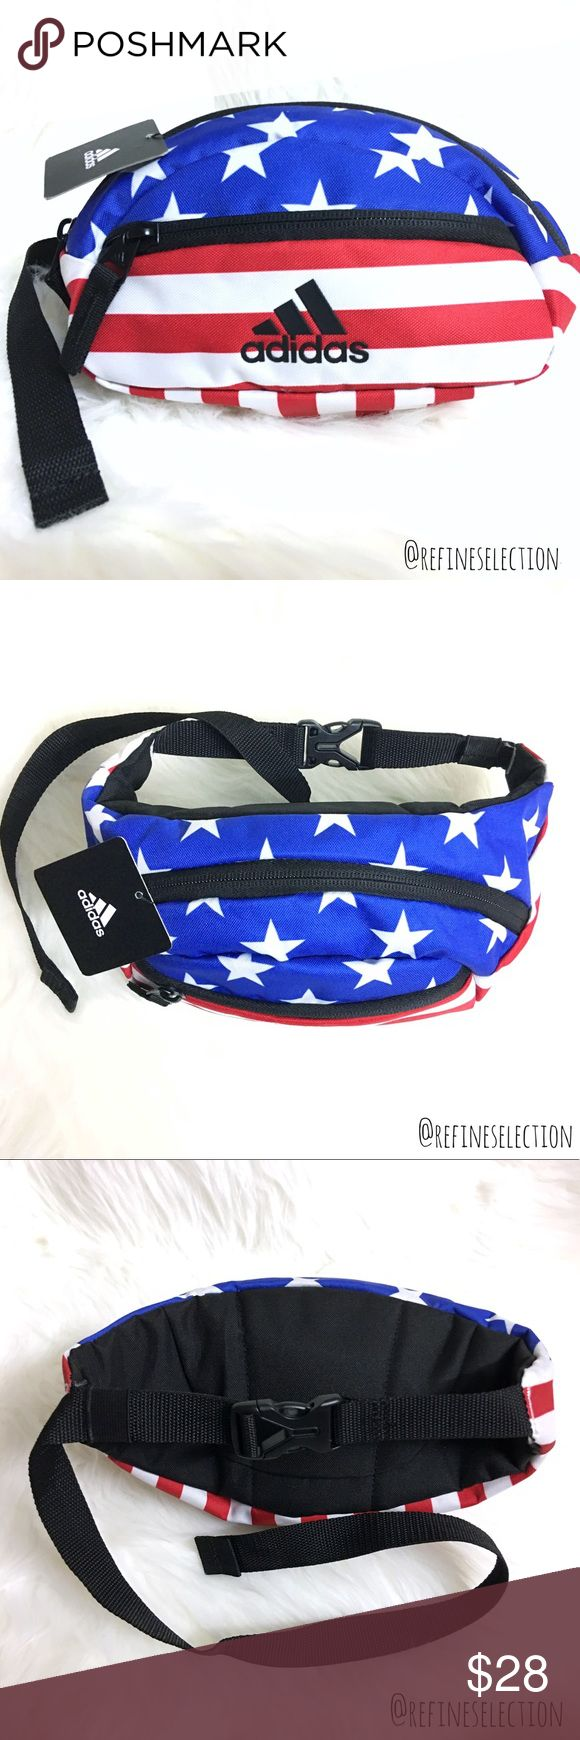 """Adidas American Flag Rand II Fanny Pack Waistpack Brand new with tags. This Adidas Originals American Flag Rand II Fanny Pack Waistpack is perfect for festivals, concerts and working out / exercising! Love the American flag, star and stripes print with the adjustable black waistband. One large zipper compartment with one smaller zipper pocket in front. Measures approximately 11.5"""" L x 5.5"""" H x 4"""" D. Made of 100% Polyester. adidas Bags"""